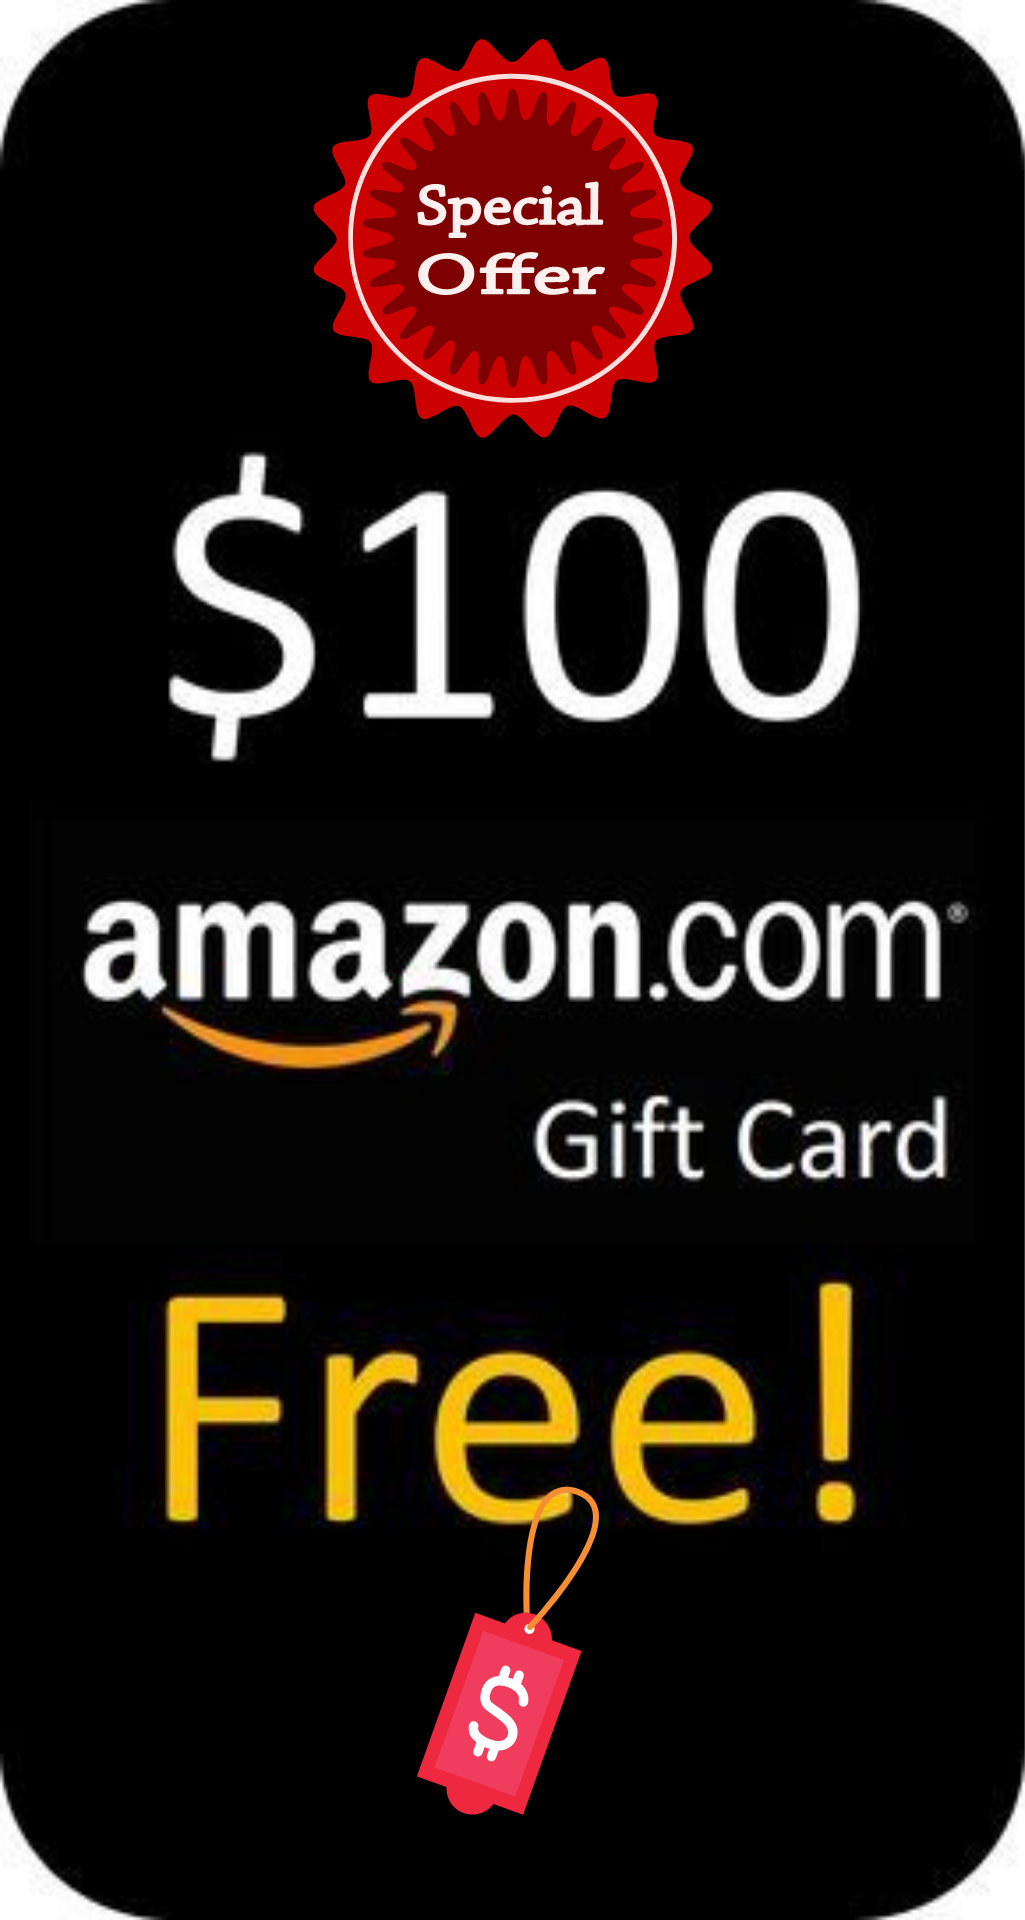 Usa 100 Free Gift Card Free Gift Cards Online Free Gift Cards Amazon Gift Card Free